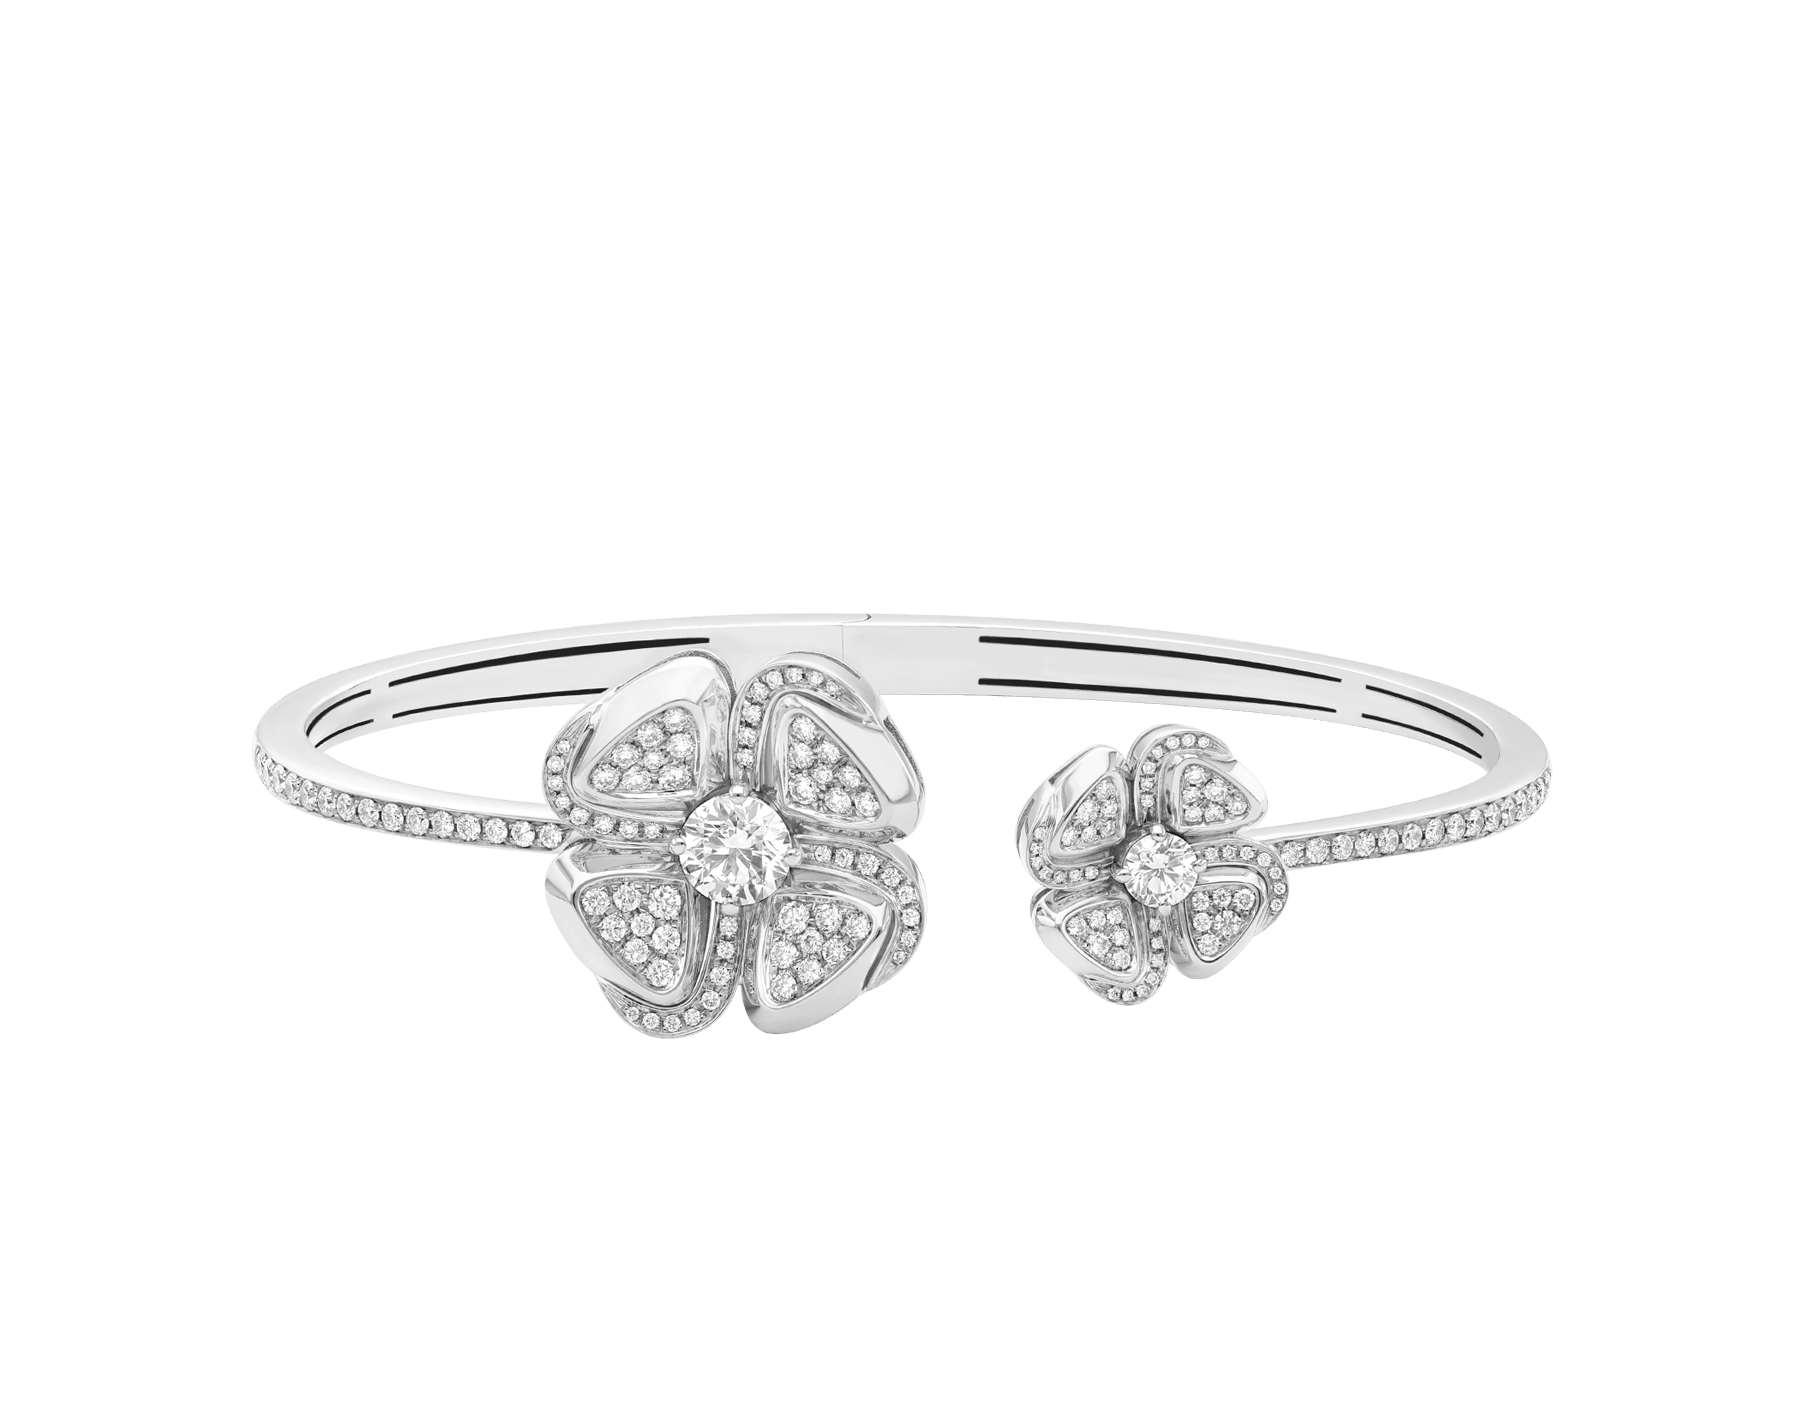 Fiorever 18 kt white gold bangle set with two central diamonds and pavé diamonds. BR858890 image 3